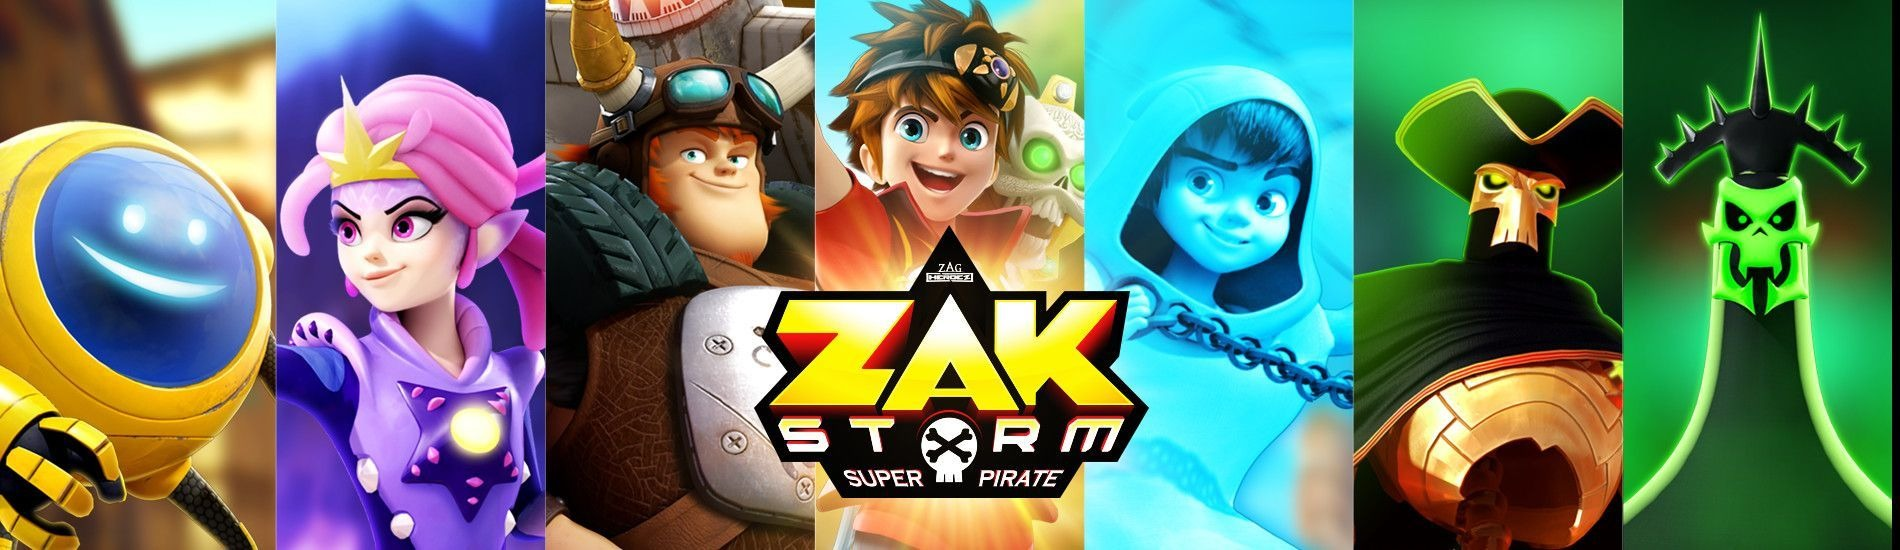 Zak Storm, super Pirate en streaming sur Gulli Replay